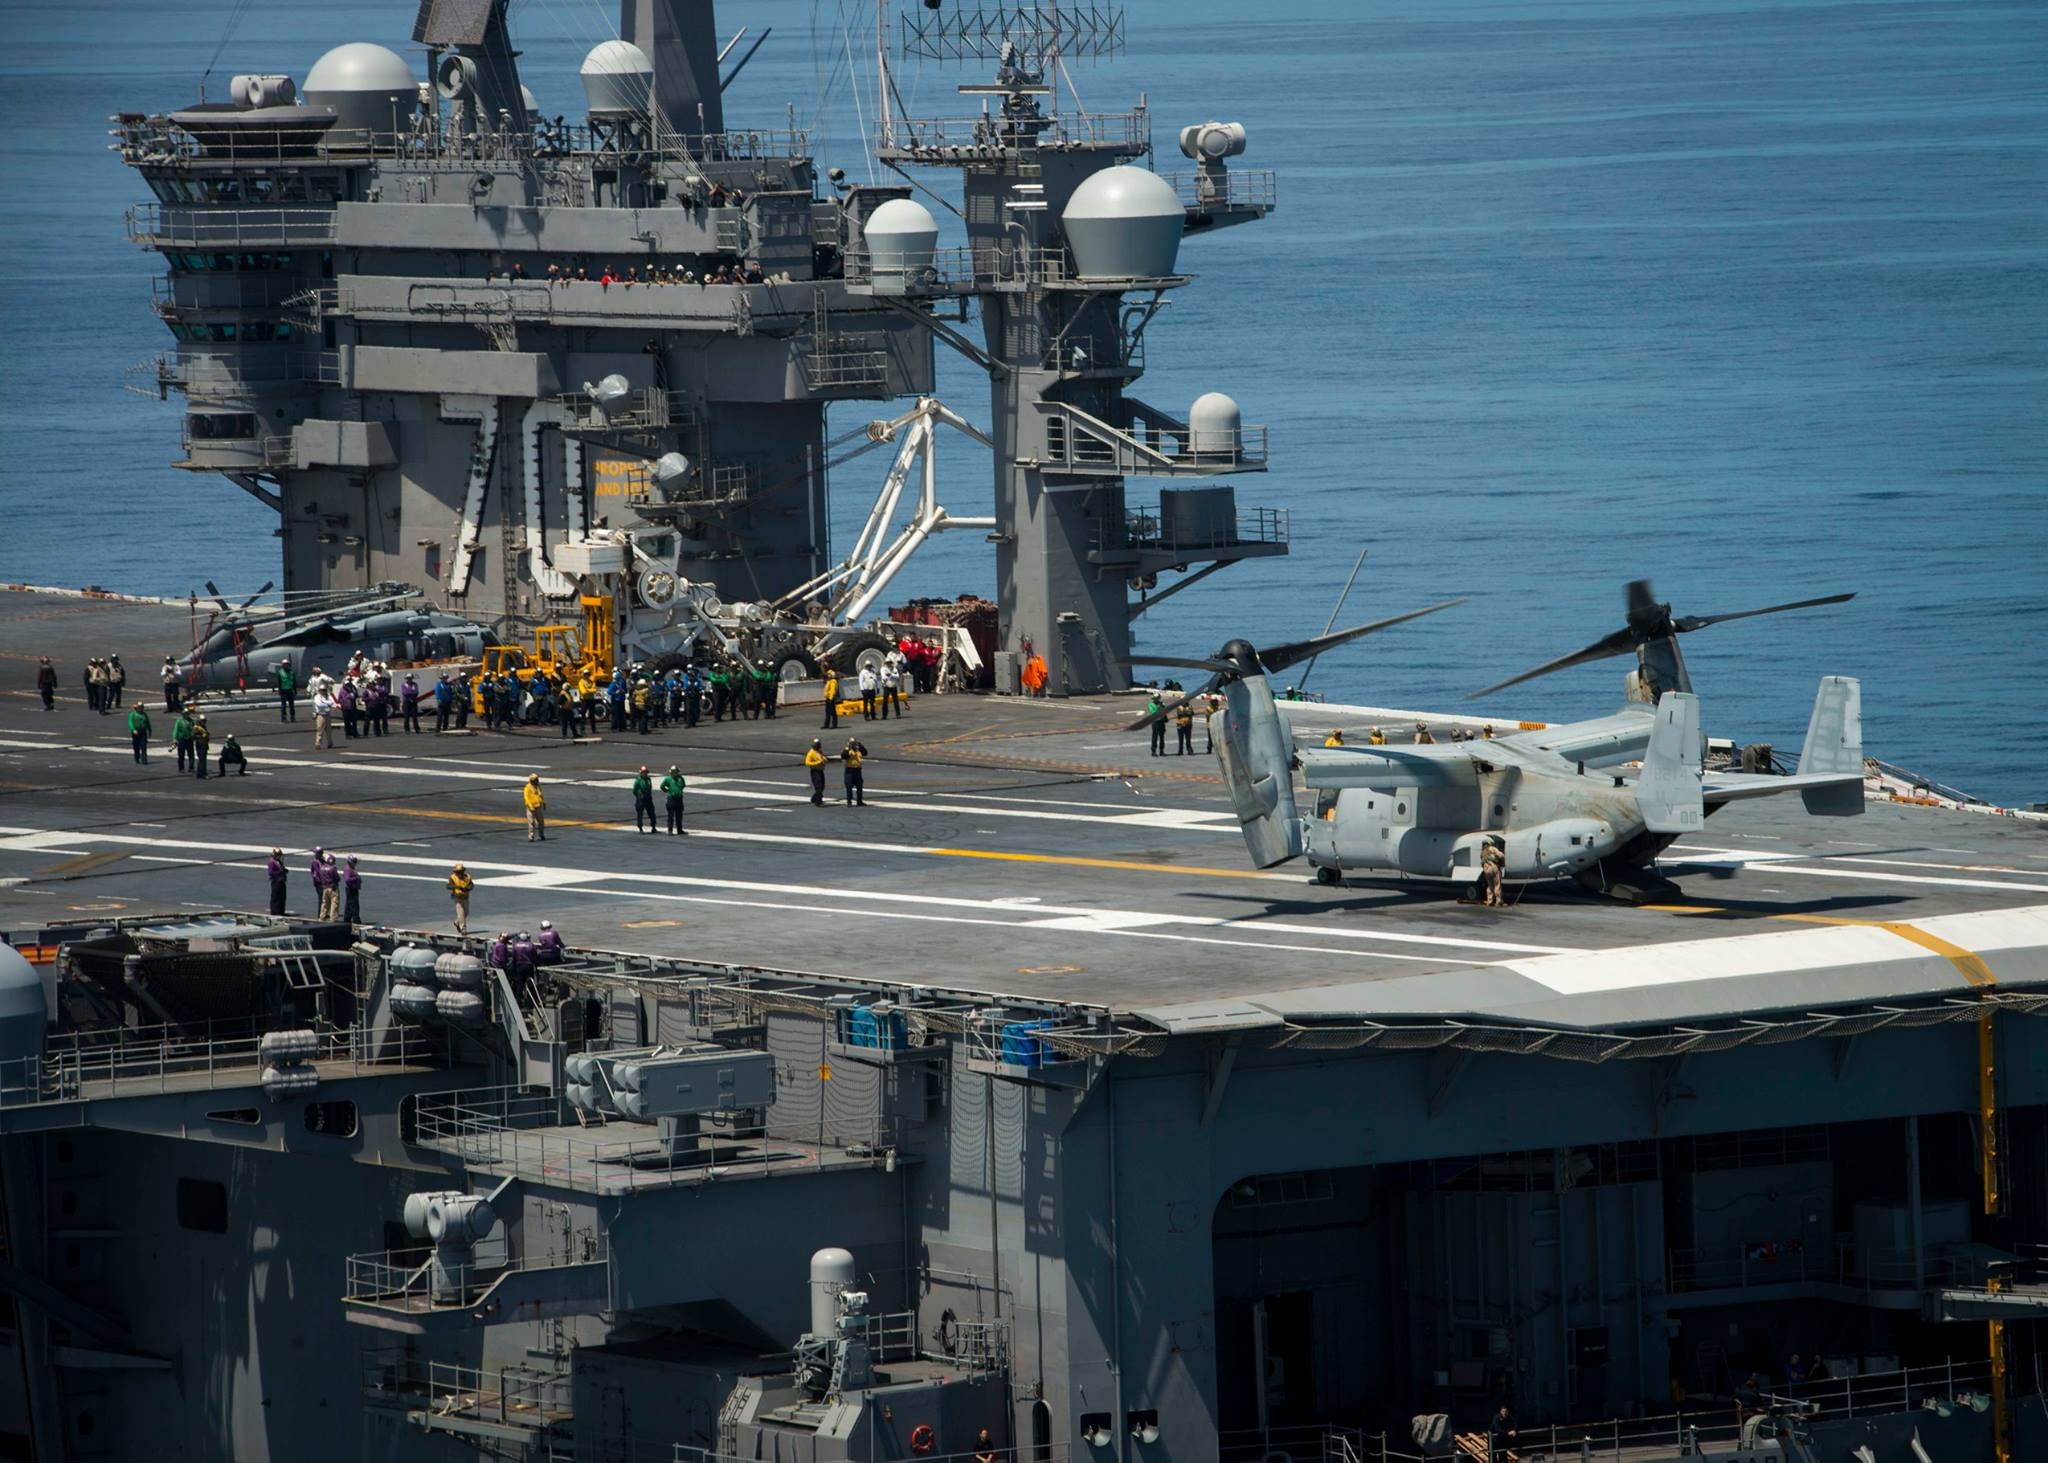 An MV-22B Osprey from Marine Operational Test and Evaluation Squadron 1 prepares to lift off from the flight deck of the aircraft carrier USS Carl Vinson (CVN 70) on June 12, 2016.